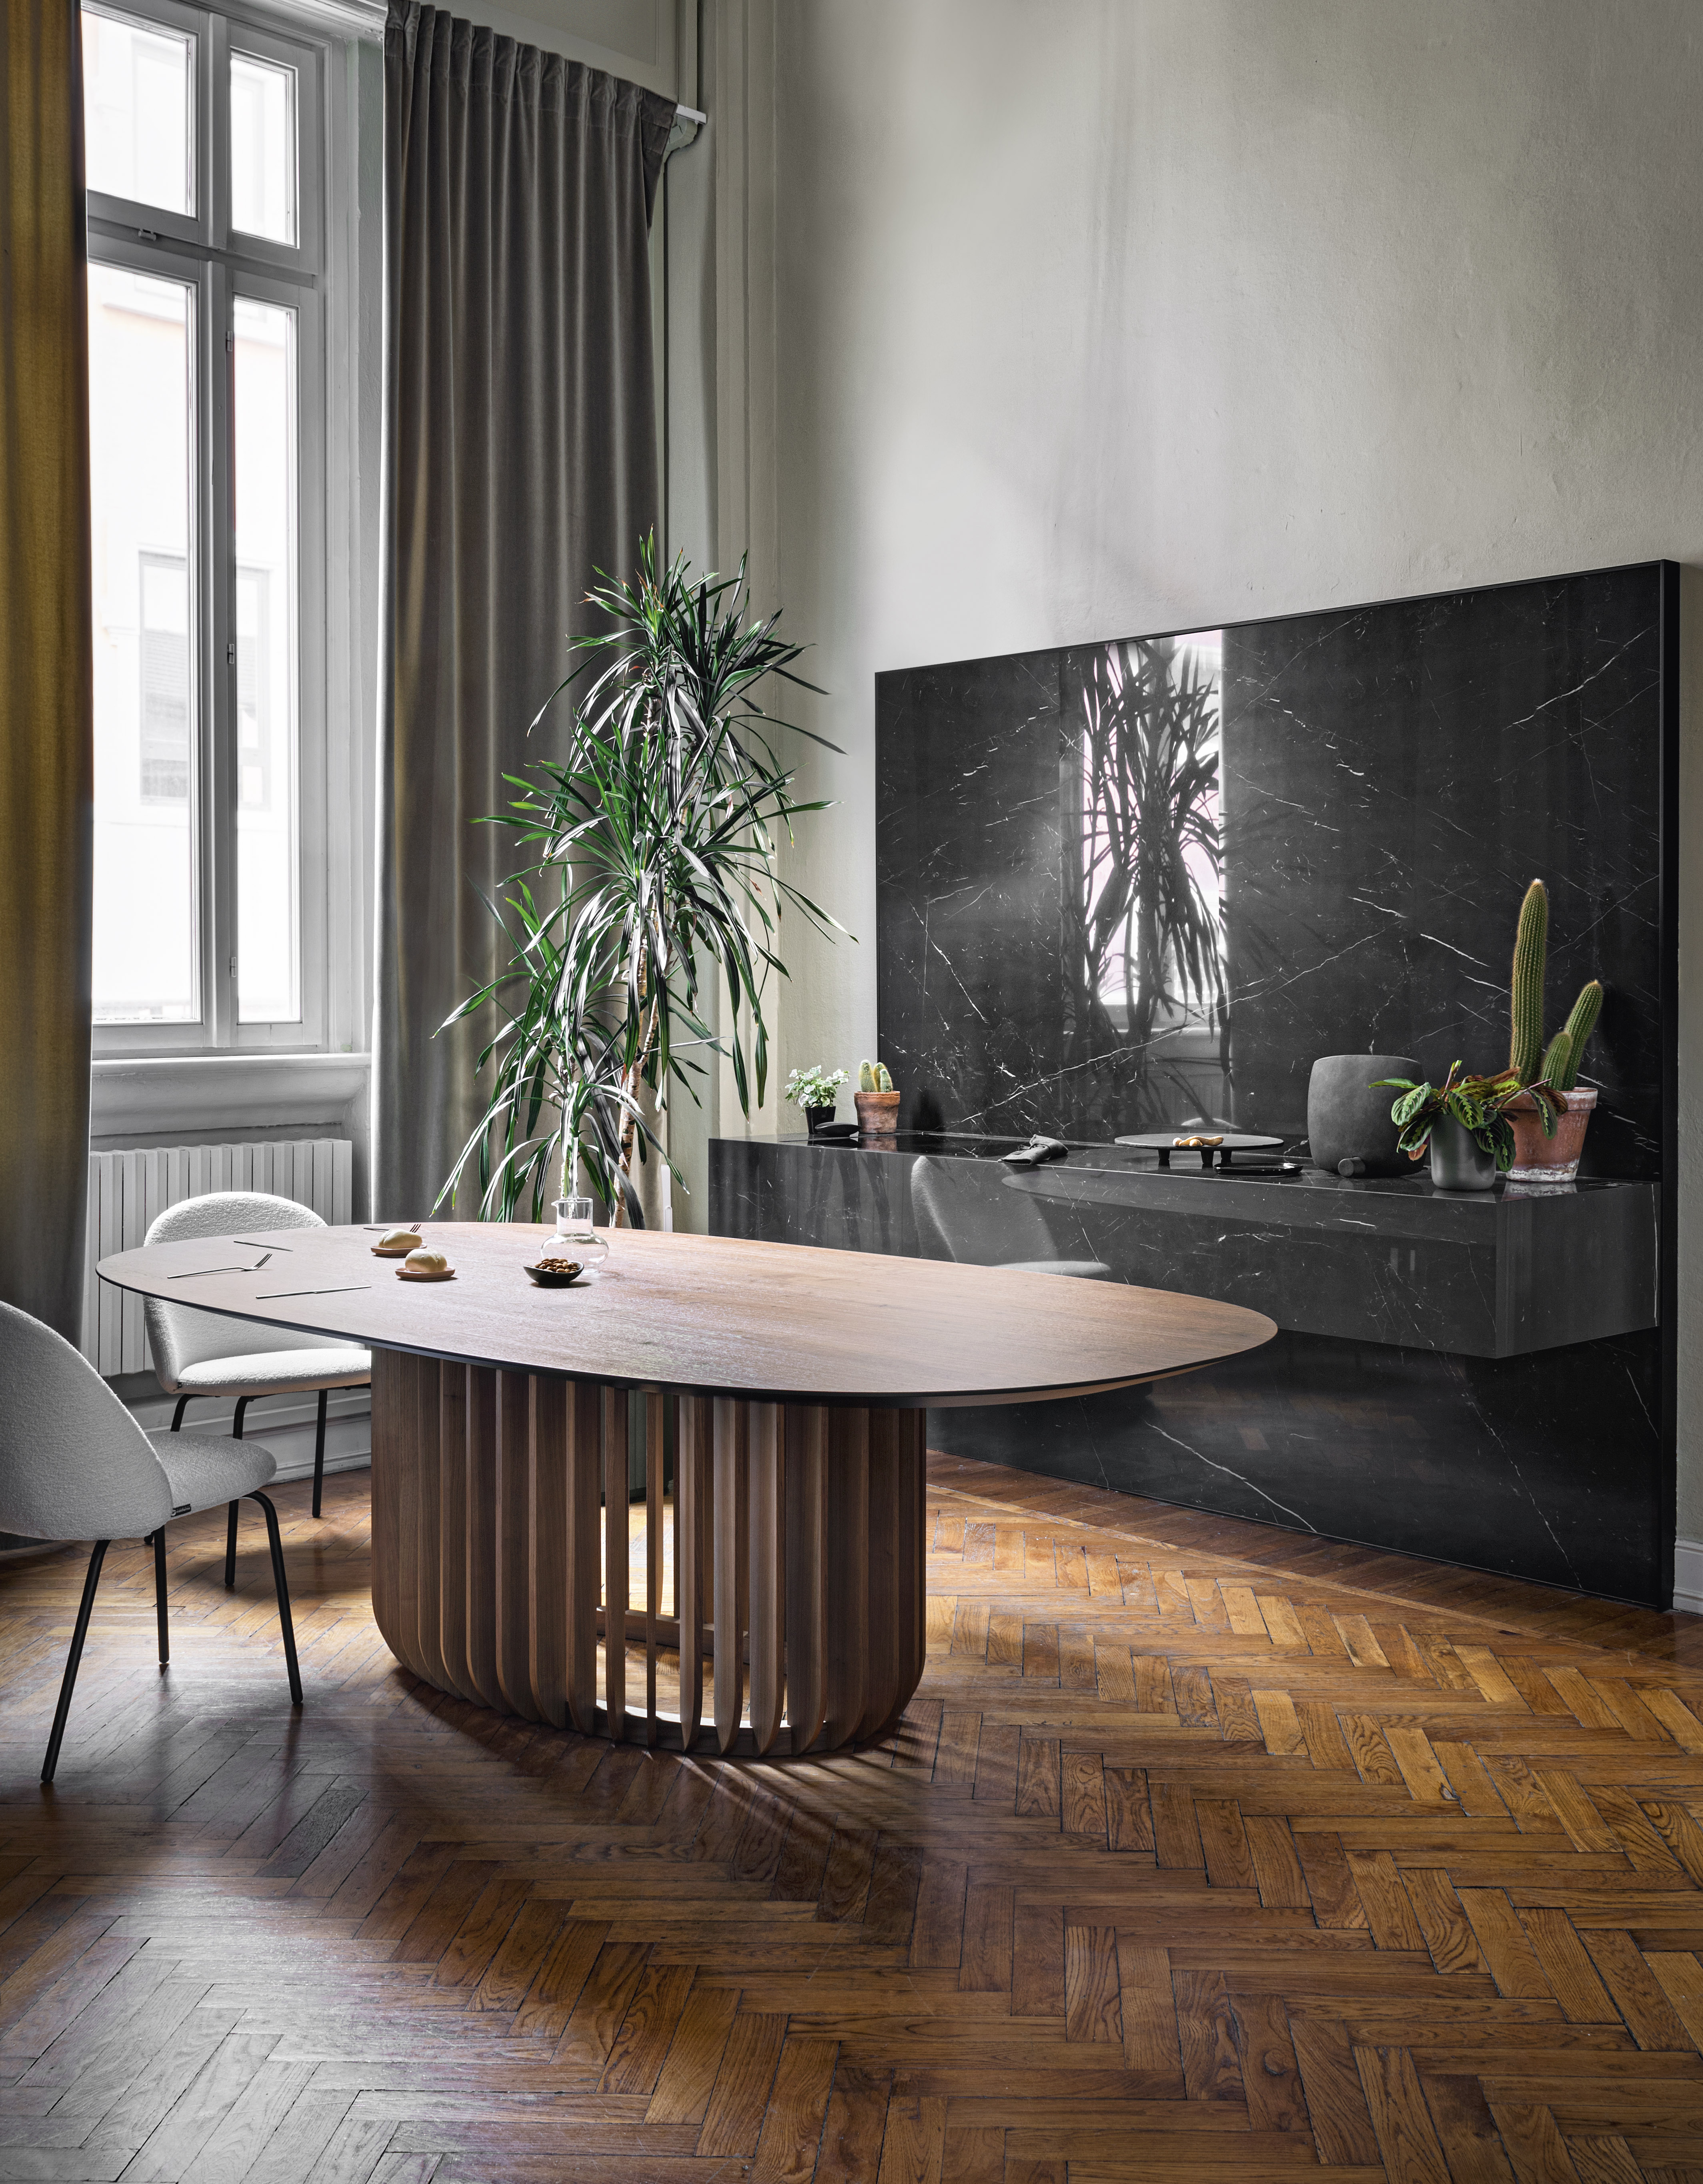 Juice Oval Table - Juice is a monumental table with a meditative air. Its essence lies in the base, where the long wooden legs attach to a ring, encircling it. Juice, a table developed around the balance between filled and empty spaces, creates a sensation of perfect calmness. The table comes with wood or ceramic top. The wooden base is available in natural oak, canaletto walnut or black ash. | Matter of Stuff